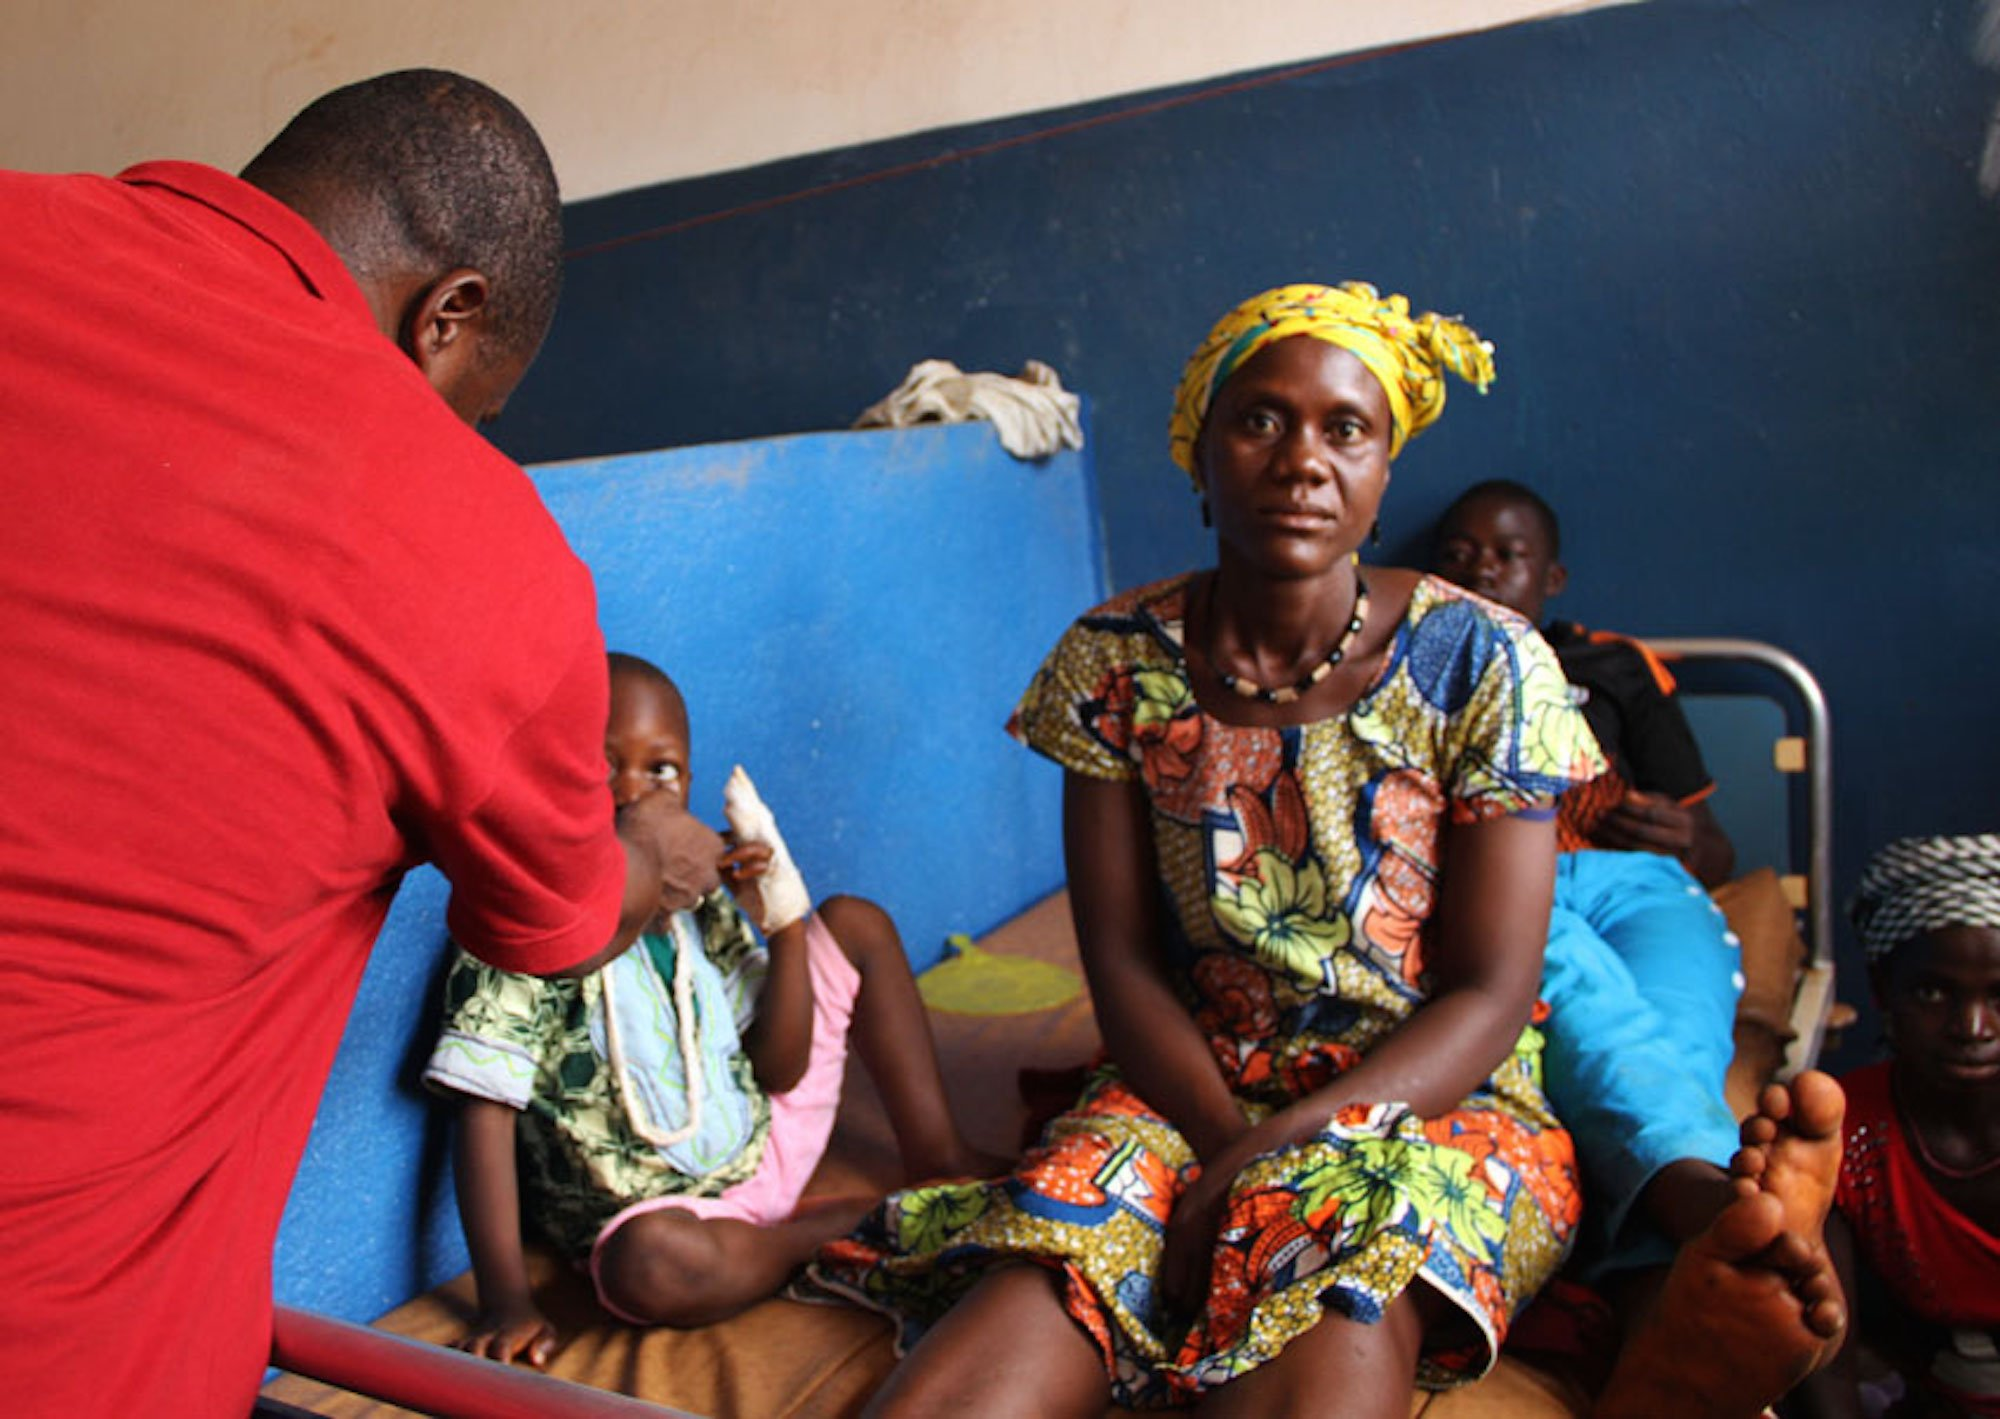 Doctor Kalissa N'Fansoumane (in red) sees patients at a hospital in Gueckedou in April 2015